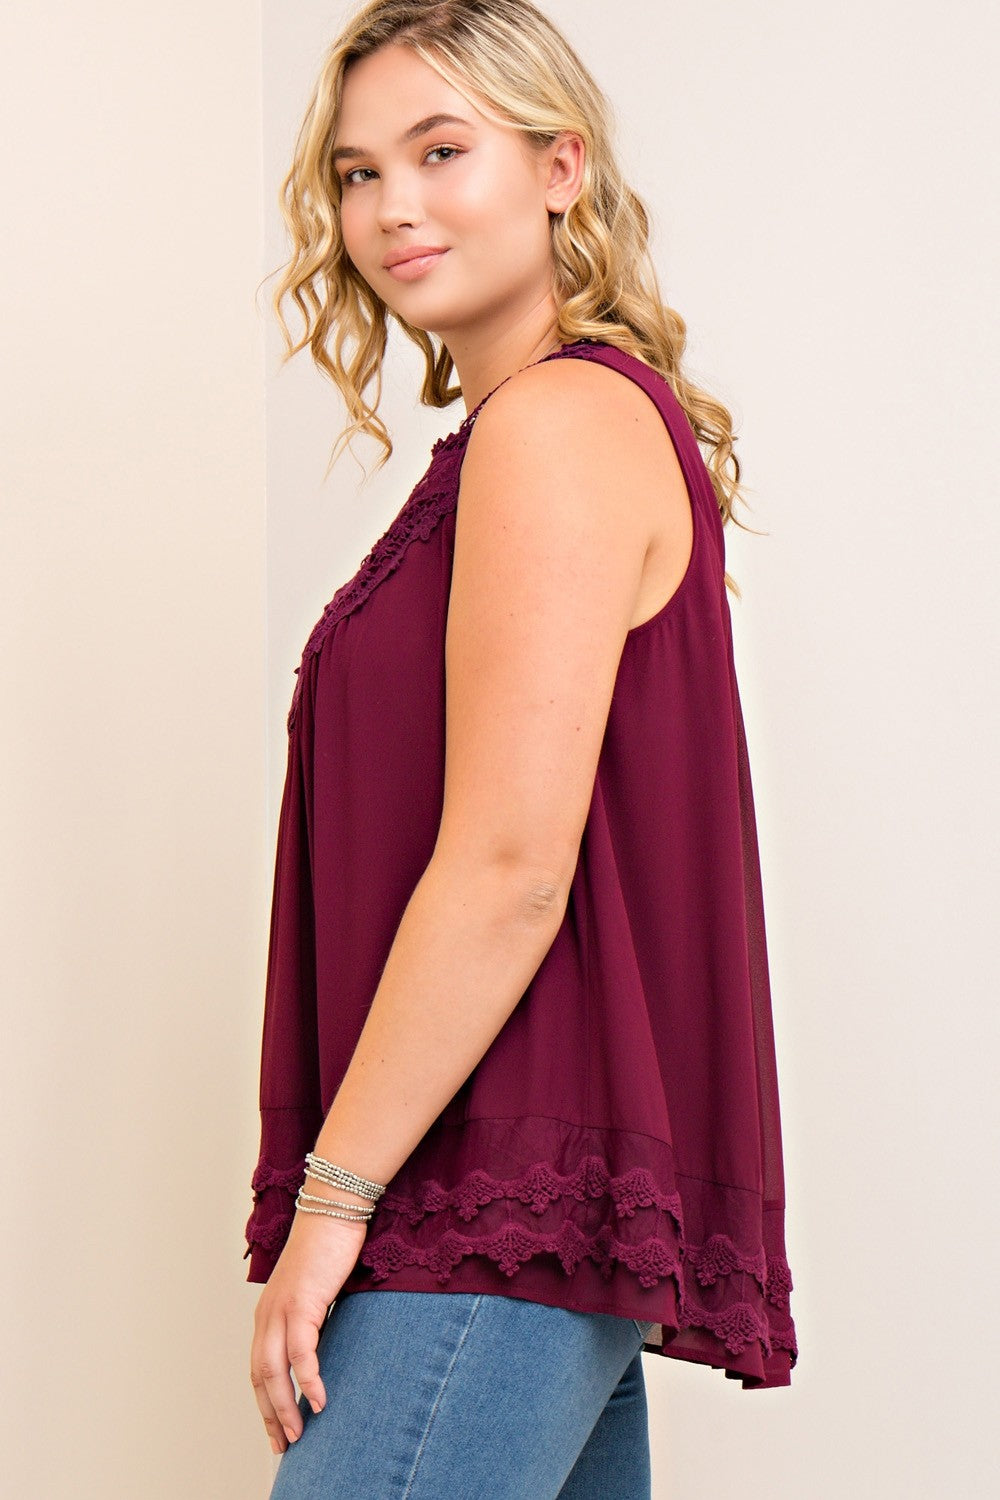 Side view young plus size woman wearing wine colored sleeveless crochet trim top